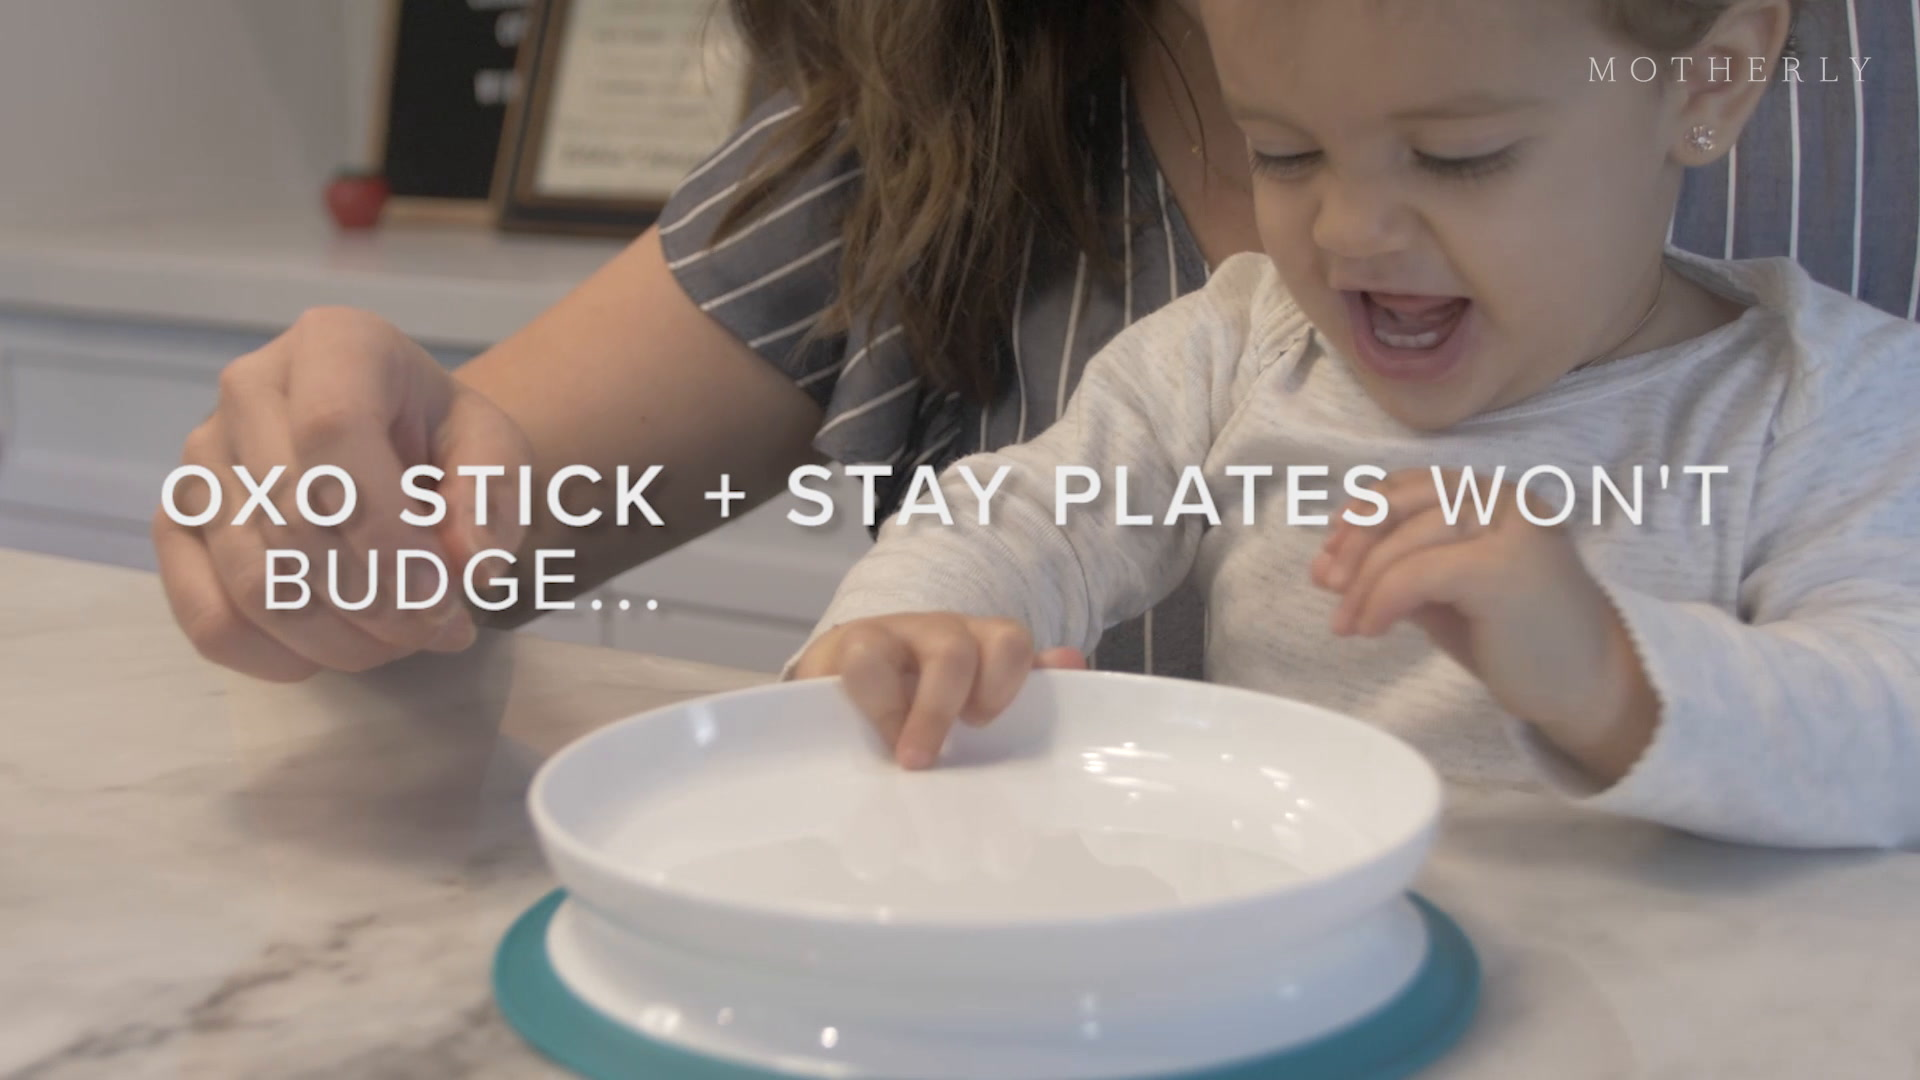 5 Mom hacks for picky eaters